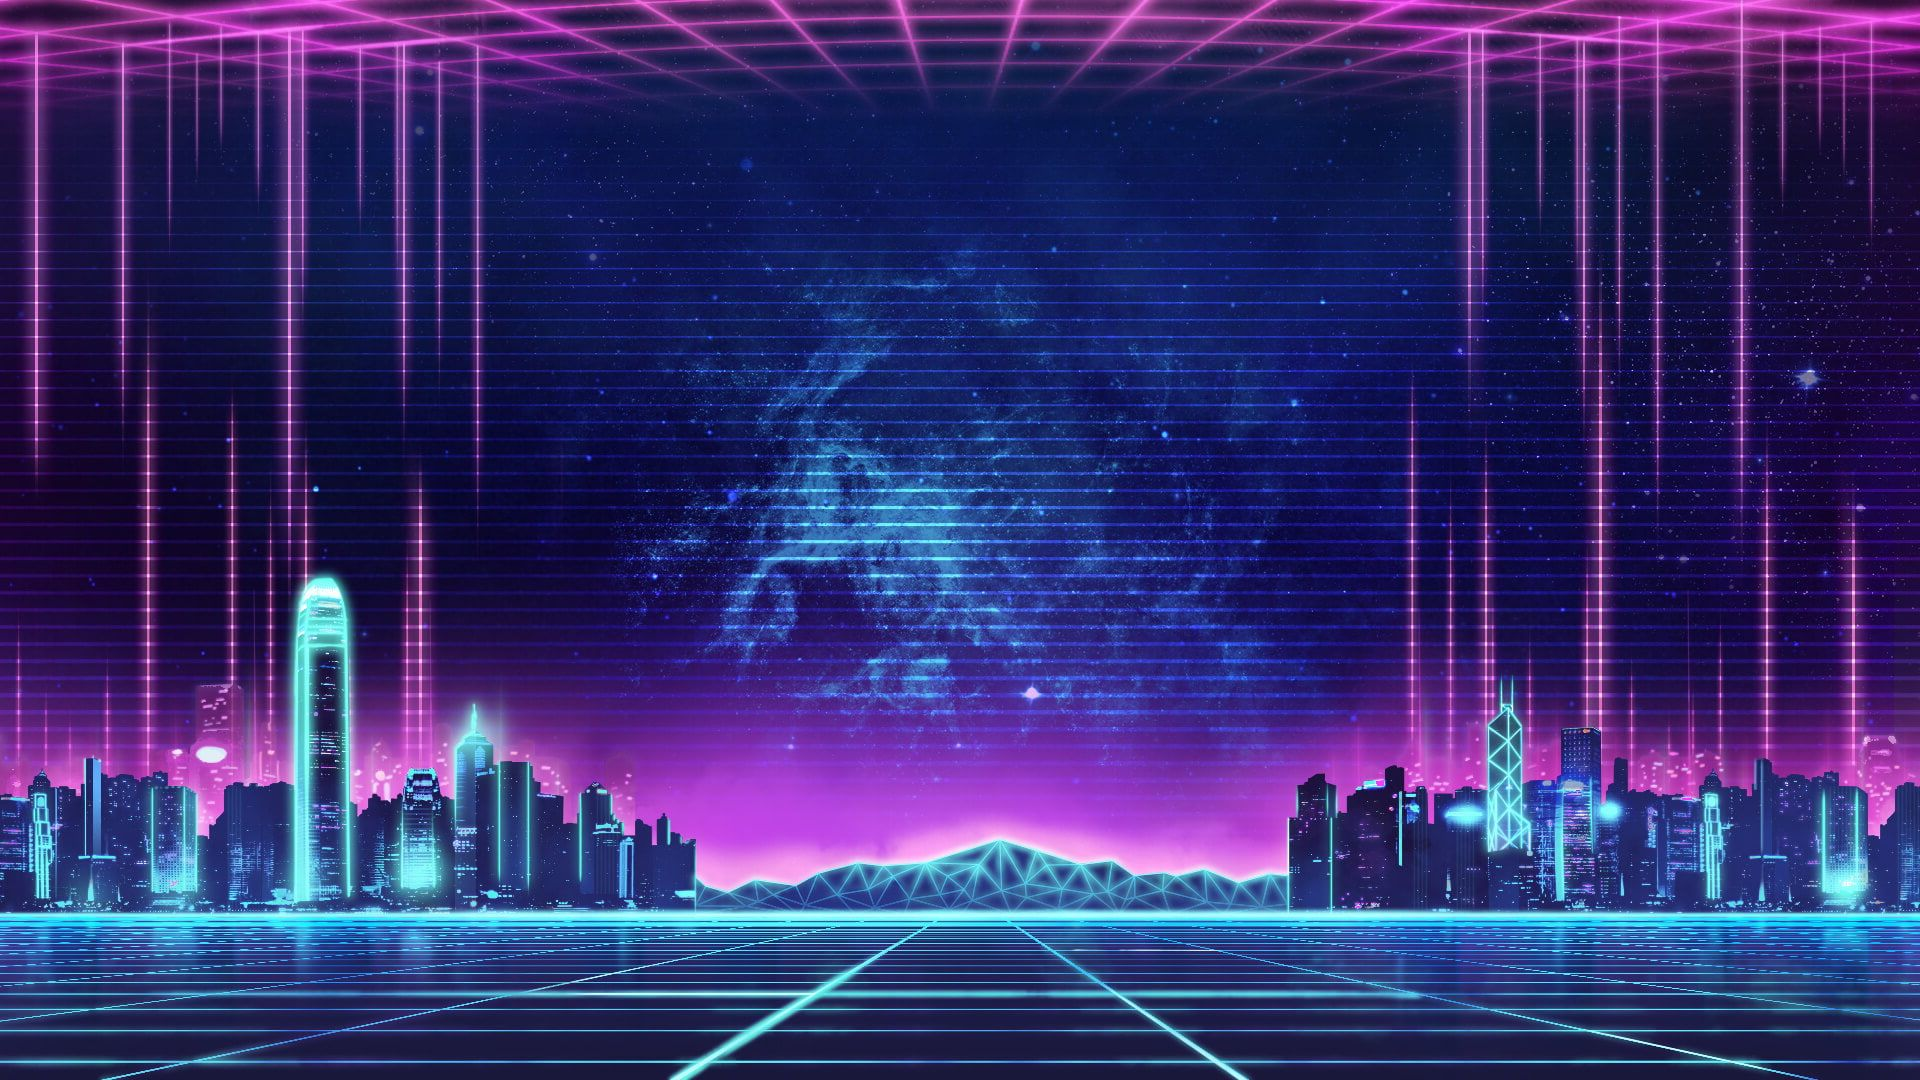 Wallpaper Synthwave Music Retro Neon City Others Architecture Built Structure Vaporwave Wallpaper Neon Wallpaper Retro Waves